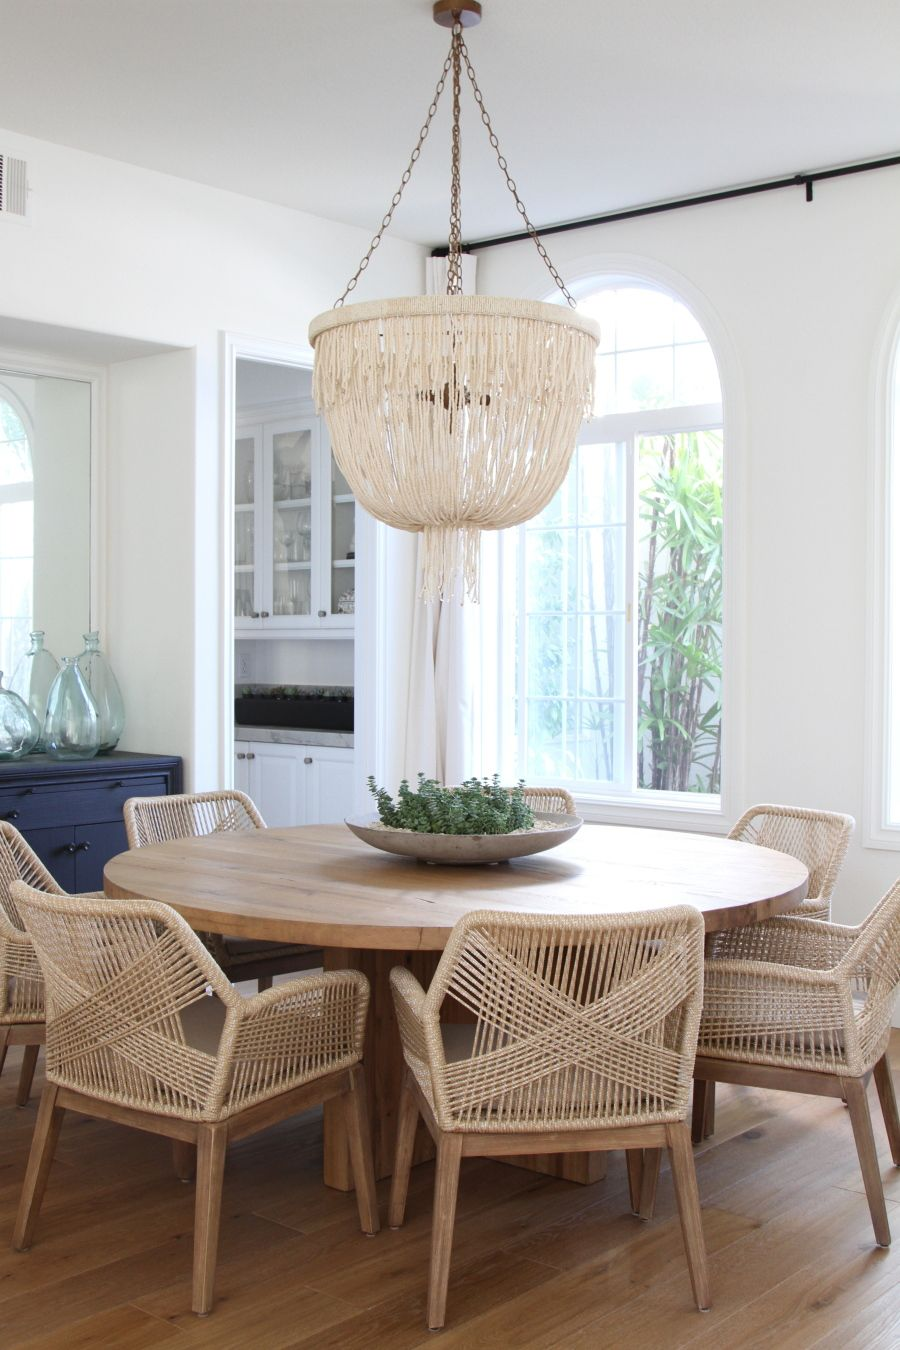 Everyone need a inspire dining room Is